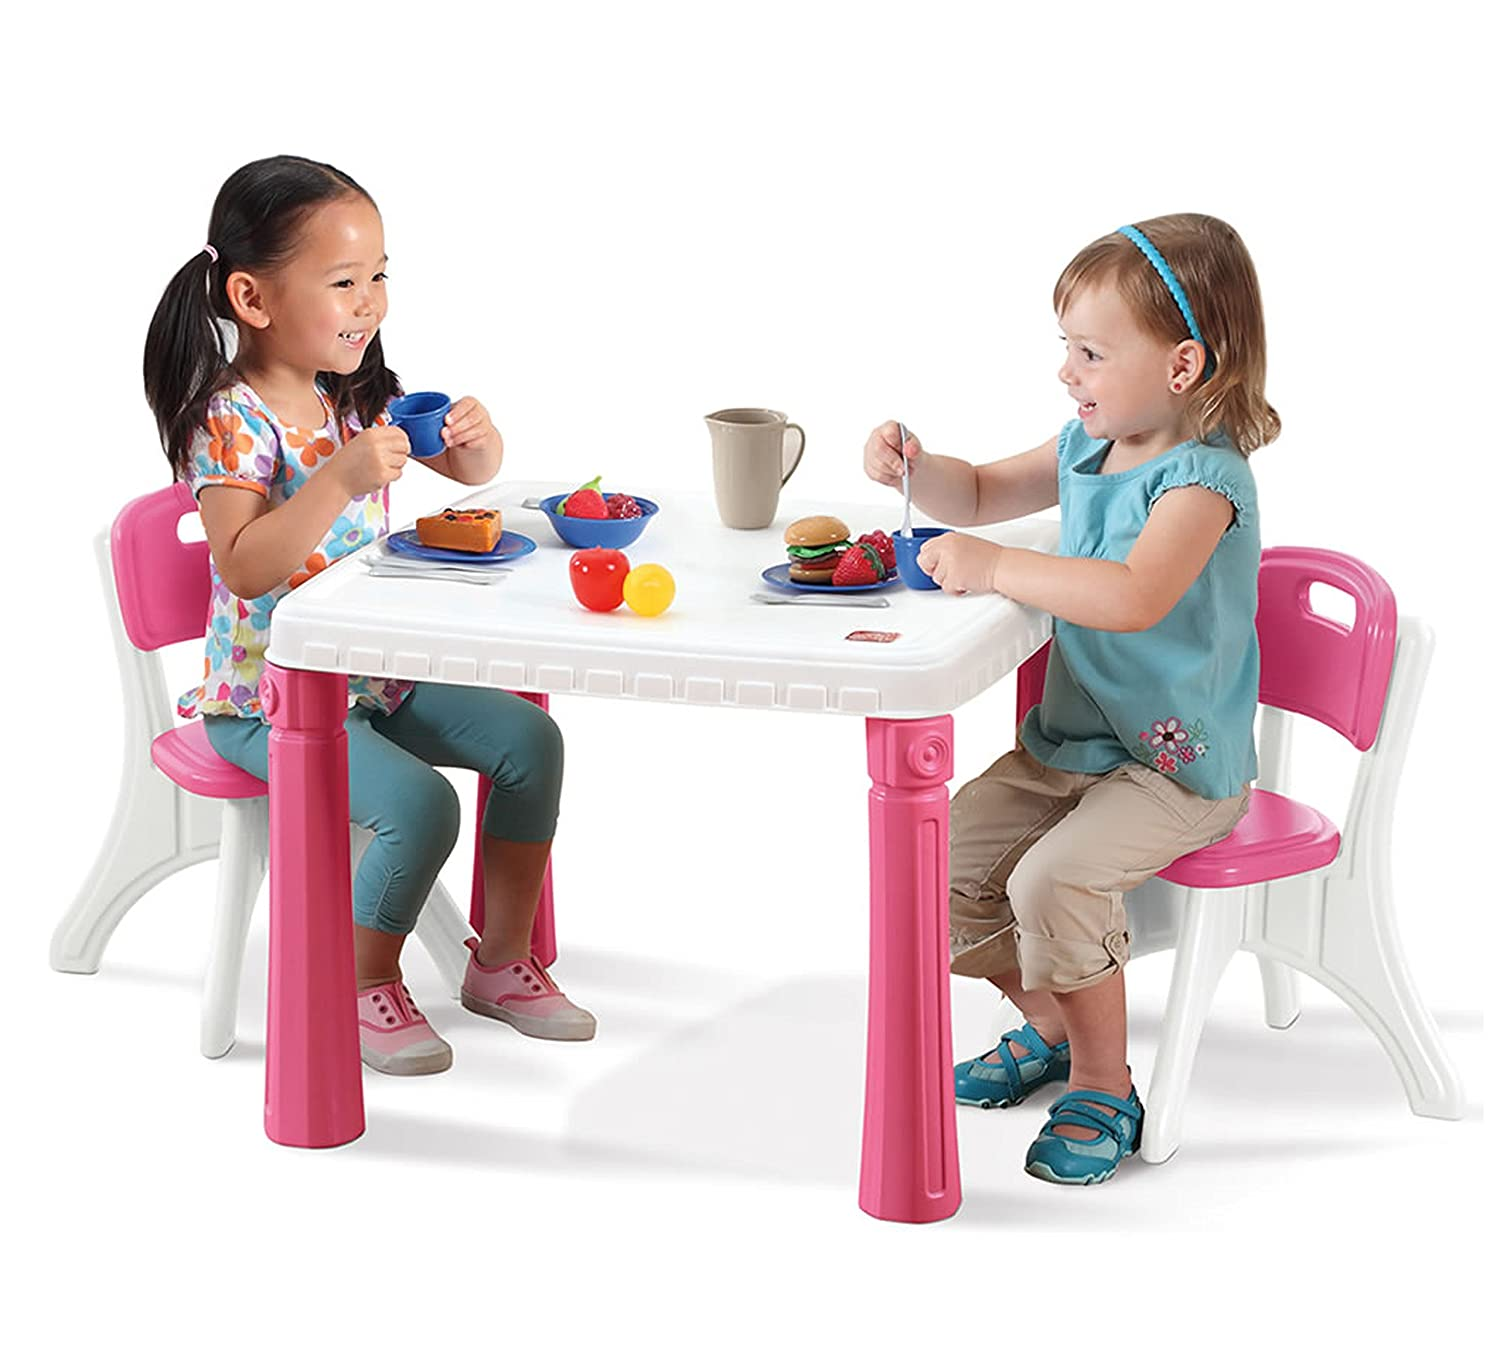 Step9 Life Style Kitchen Table and Chairs Set  Amazon.in Furniture